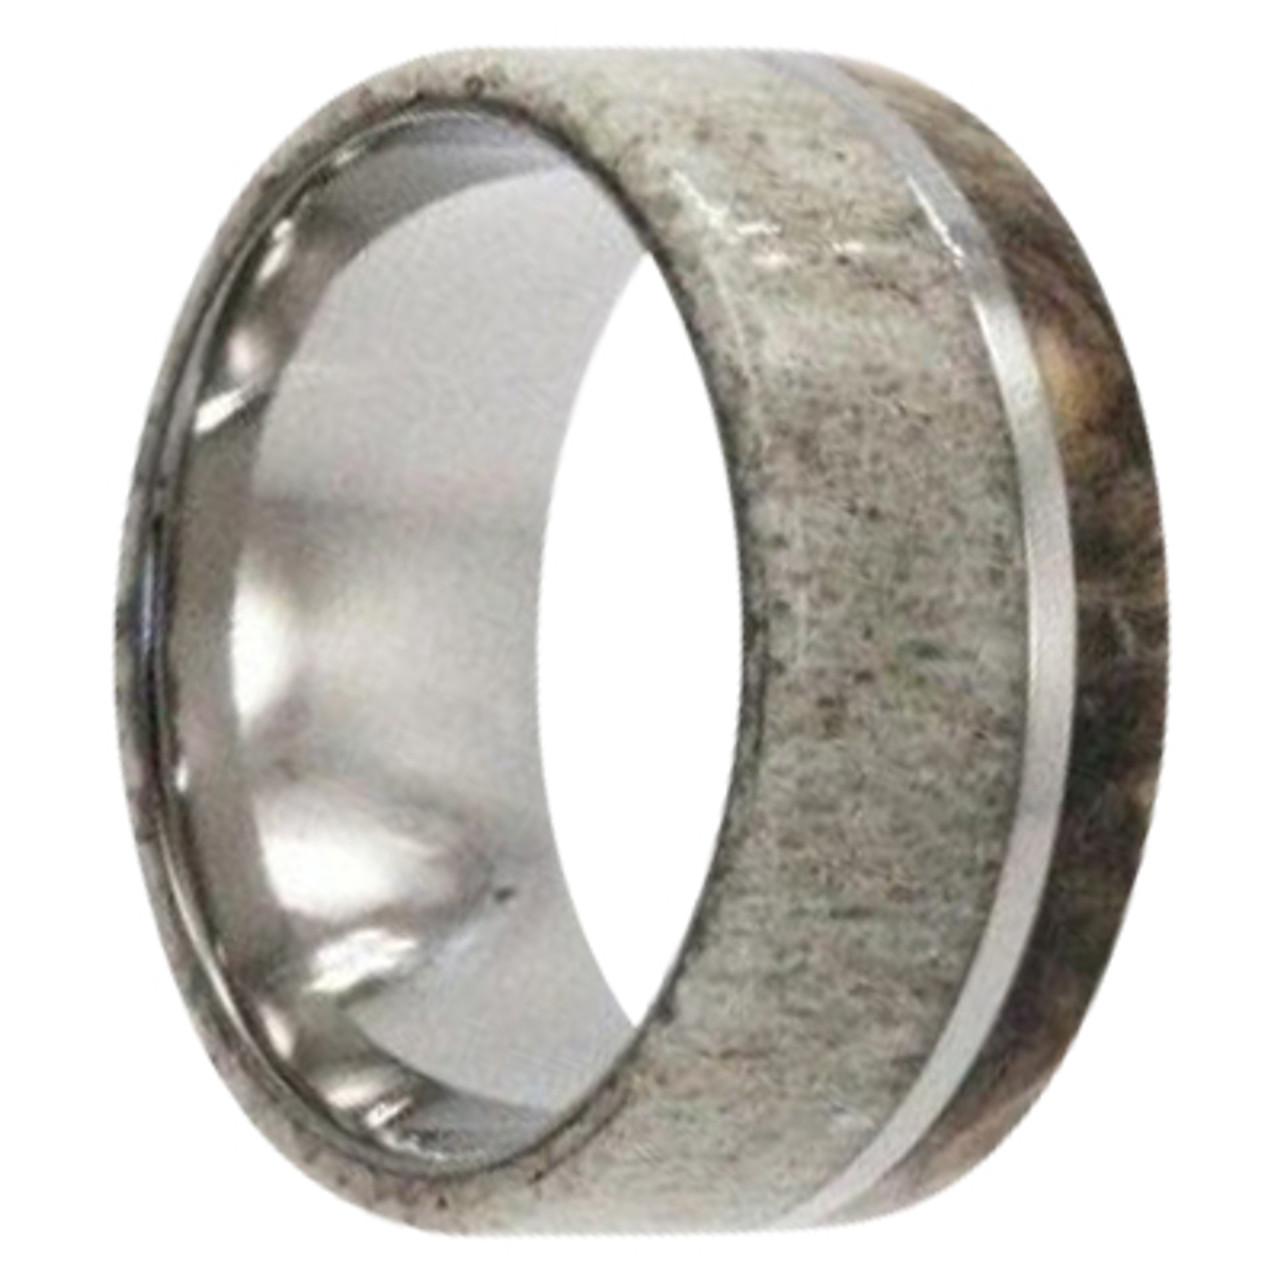 It is a picture of 42 mm Unique Mens Wedding Bands in Titanium with Antler and Buckeye Burl Wood Inlay - D42M